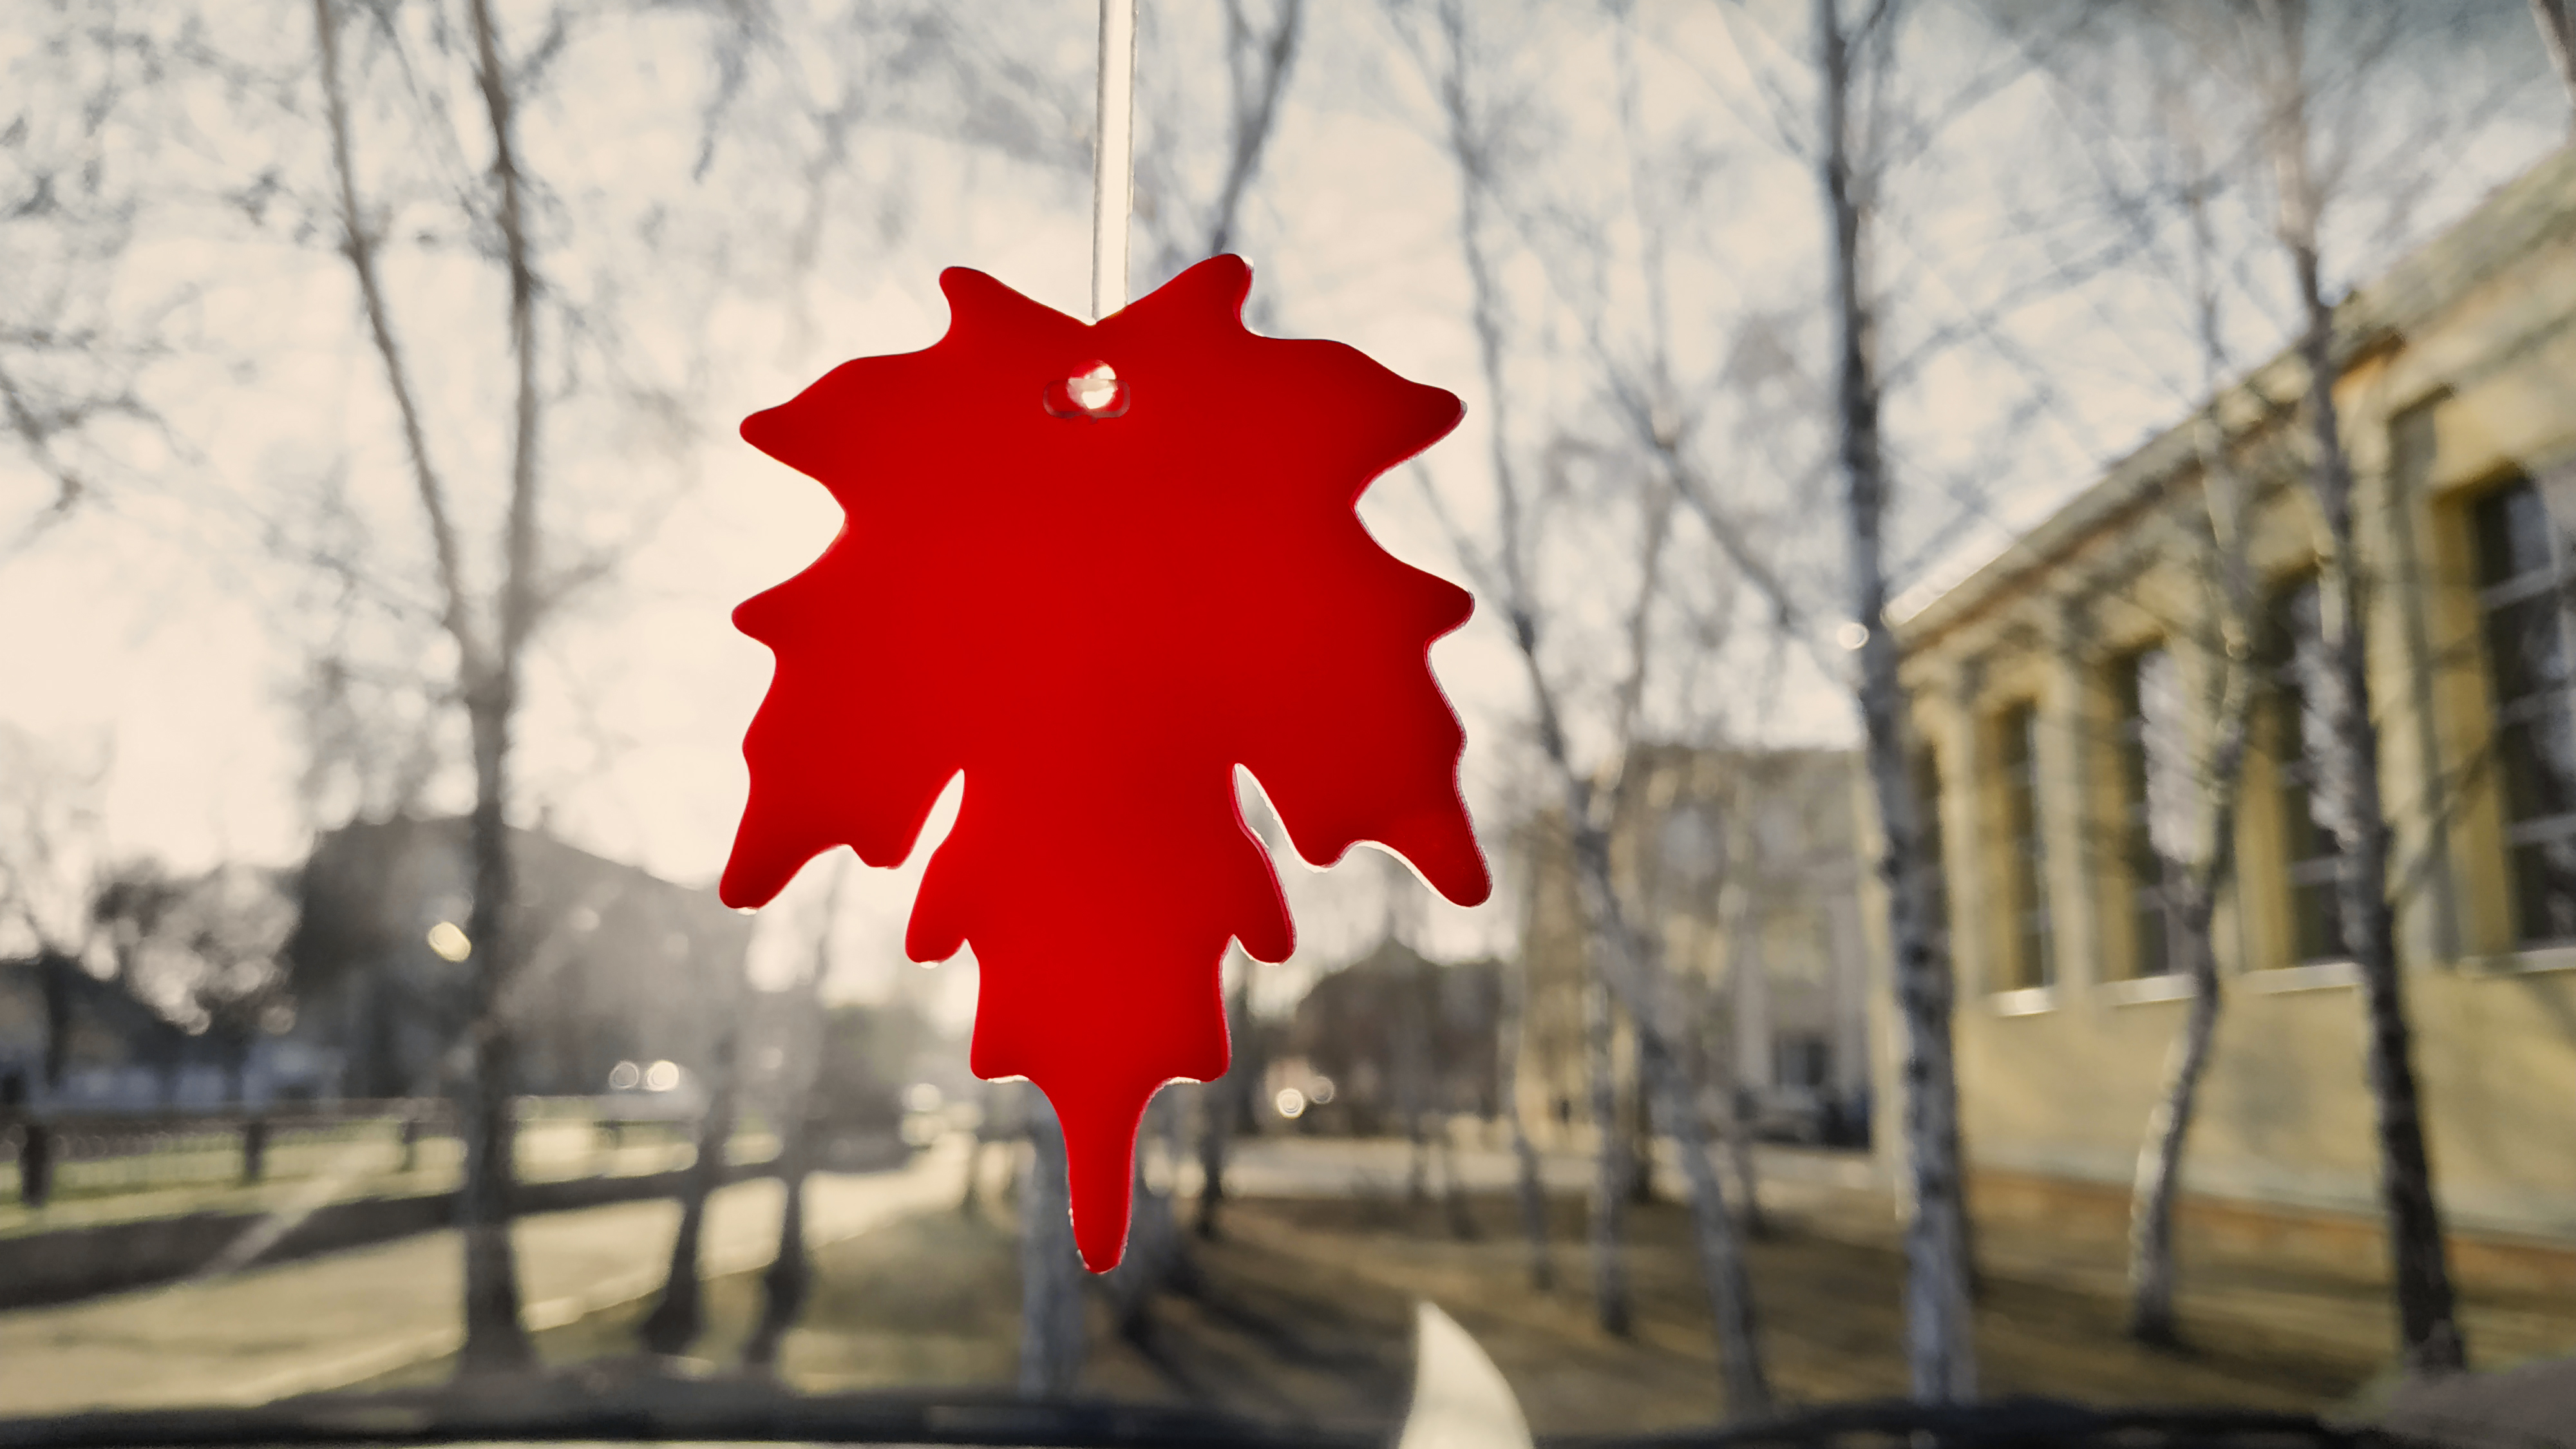 Car air freshener on a blurry background with birches